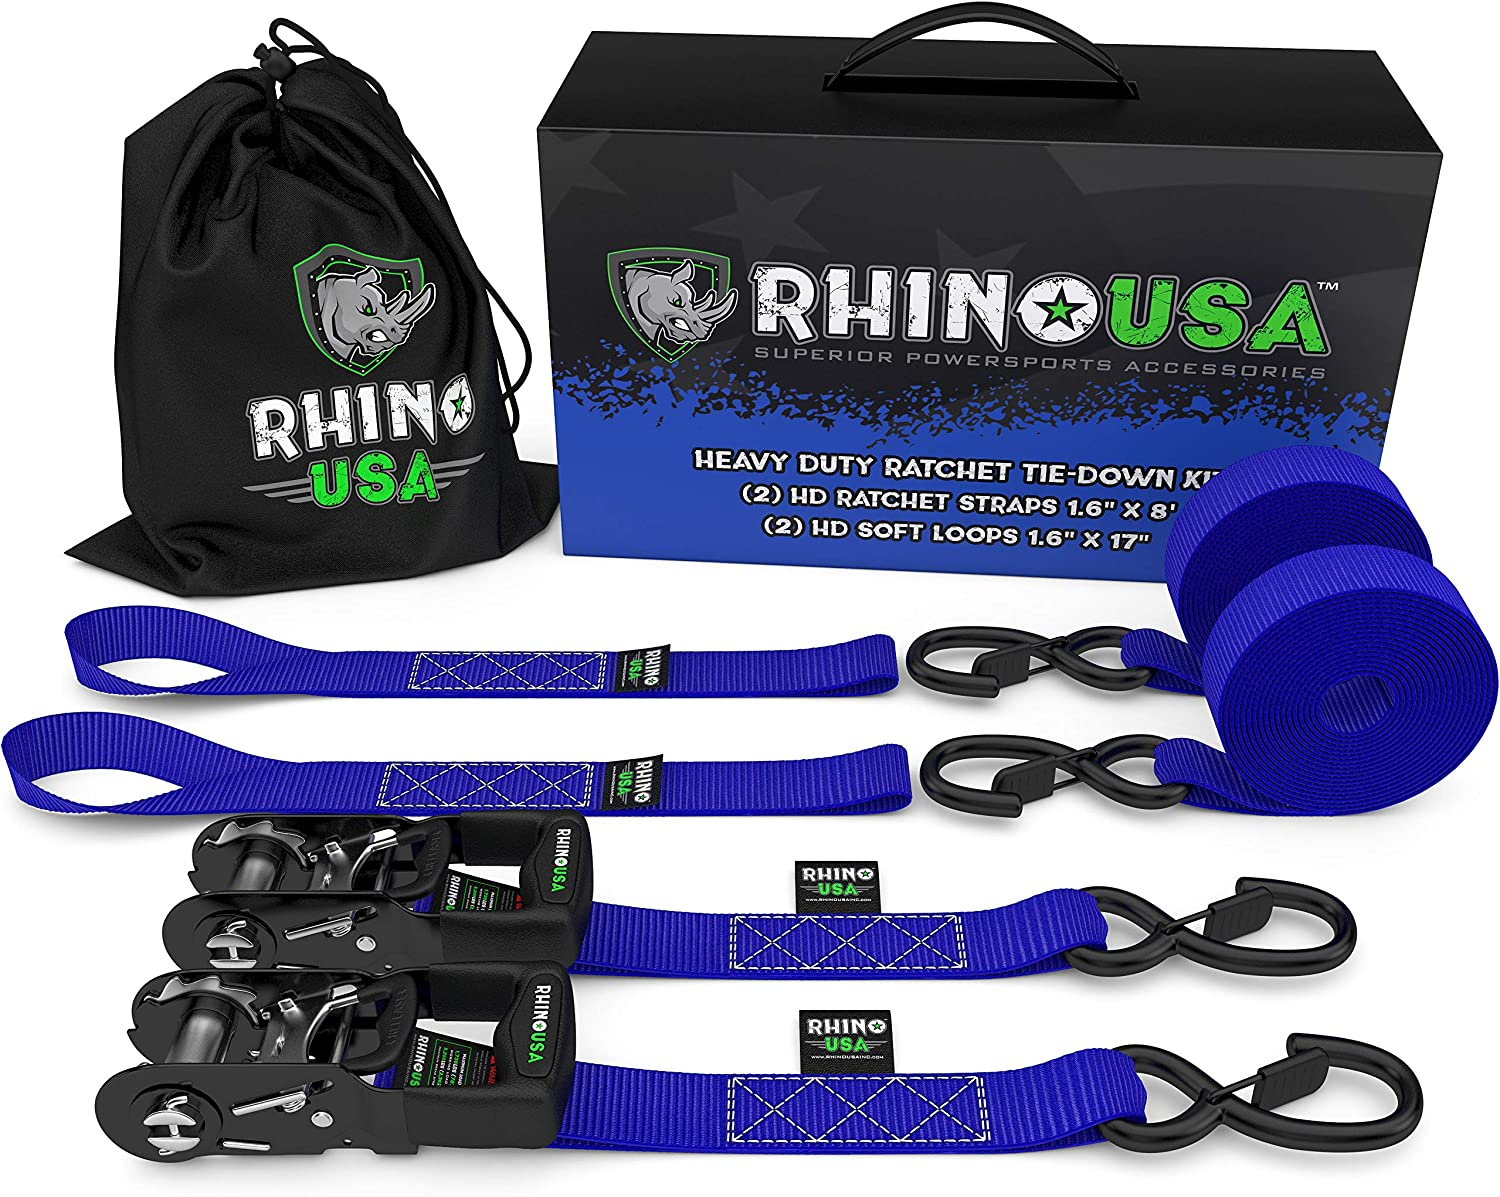 """RHINO USA Ratchet Straps Motorcycle Tie Down Kit, 5,208 Break Strength - (2) Heavy Duty 1.6"""" x 8' Rachet Tiedowns with Padded Handles & Coated Chromoly S Hooks + (2) Soft Loop Tie-Downs (Blue): Home Improvement"""